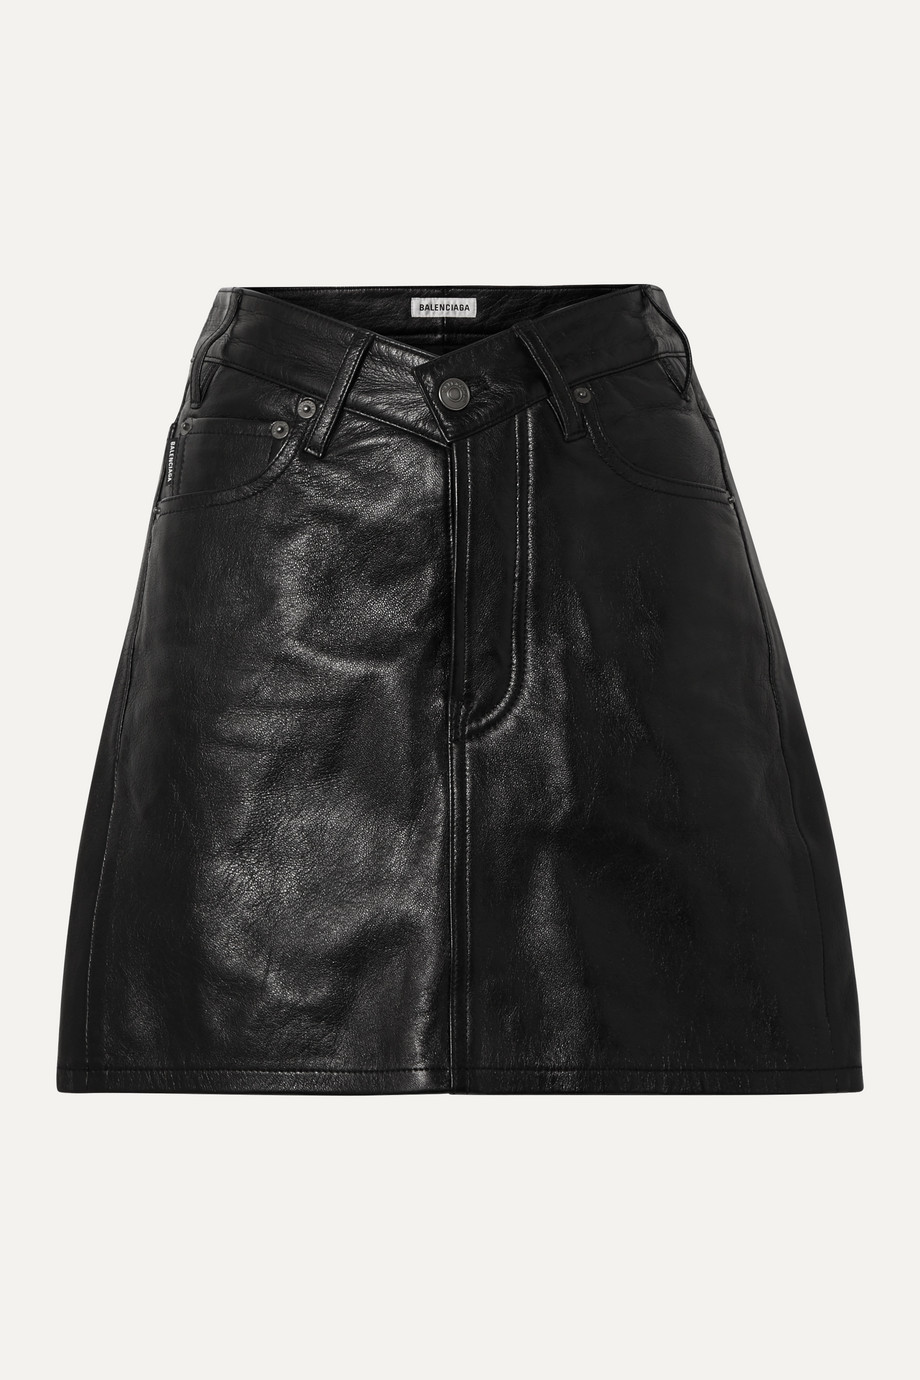 Balenciaga Textured-leather mini skirt